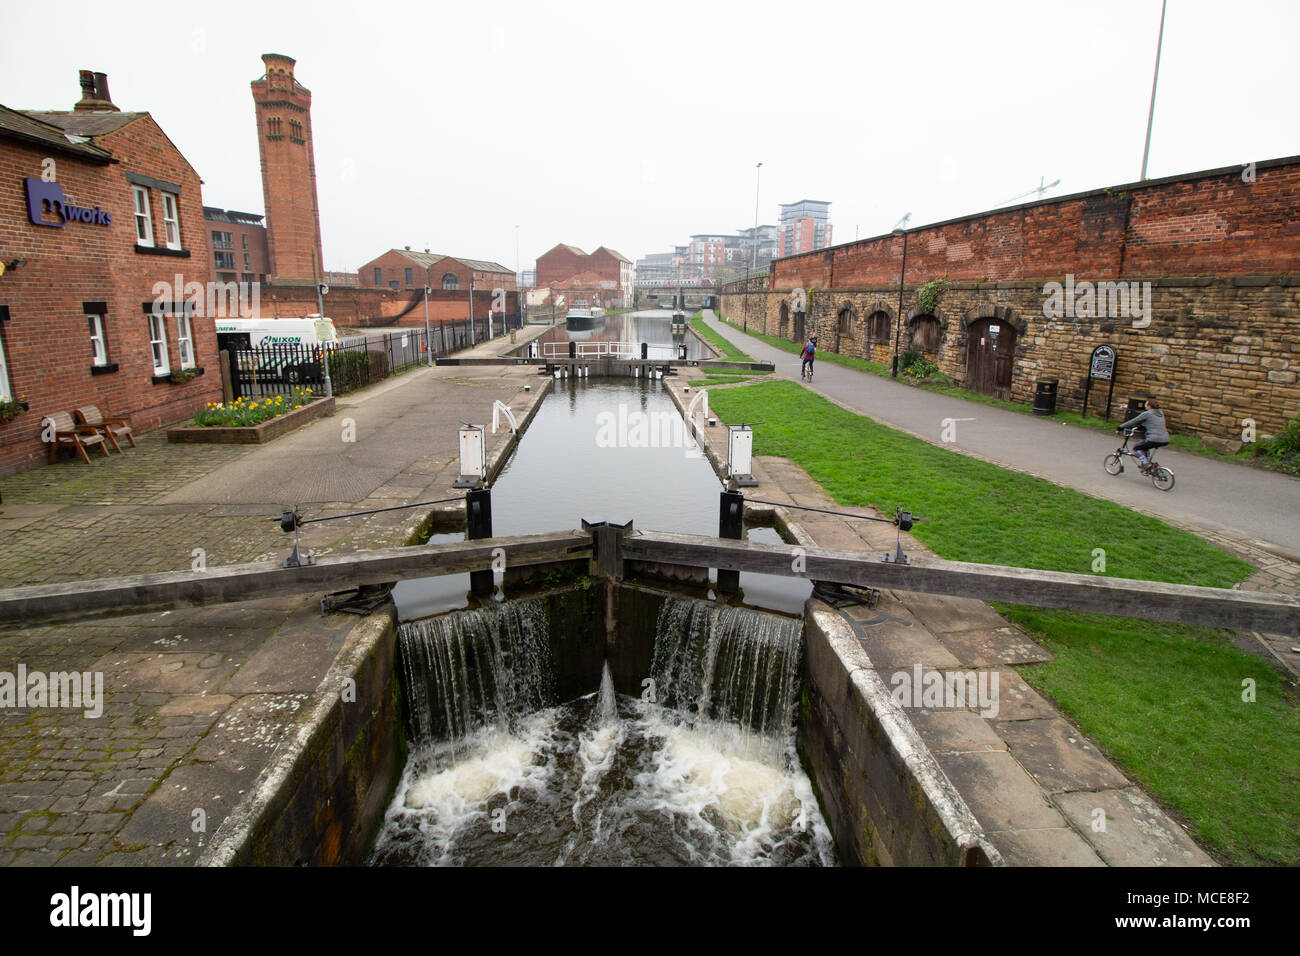 The Leeds and Liverpool canal pictured in Leeds City Centre taken from Wharf approach bridge looking westwards. - Stock Image